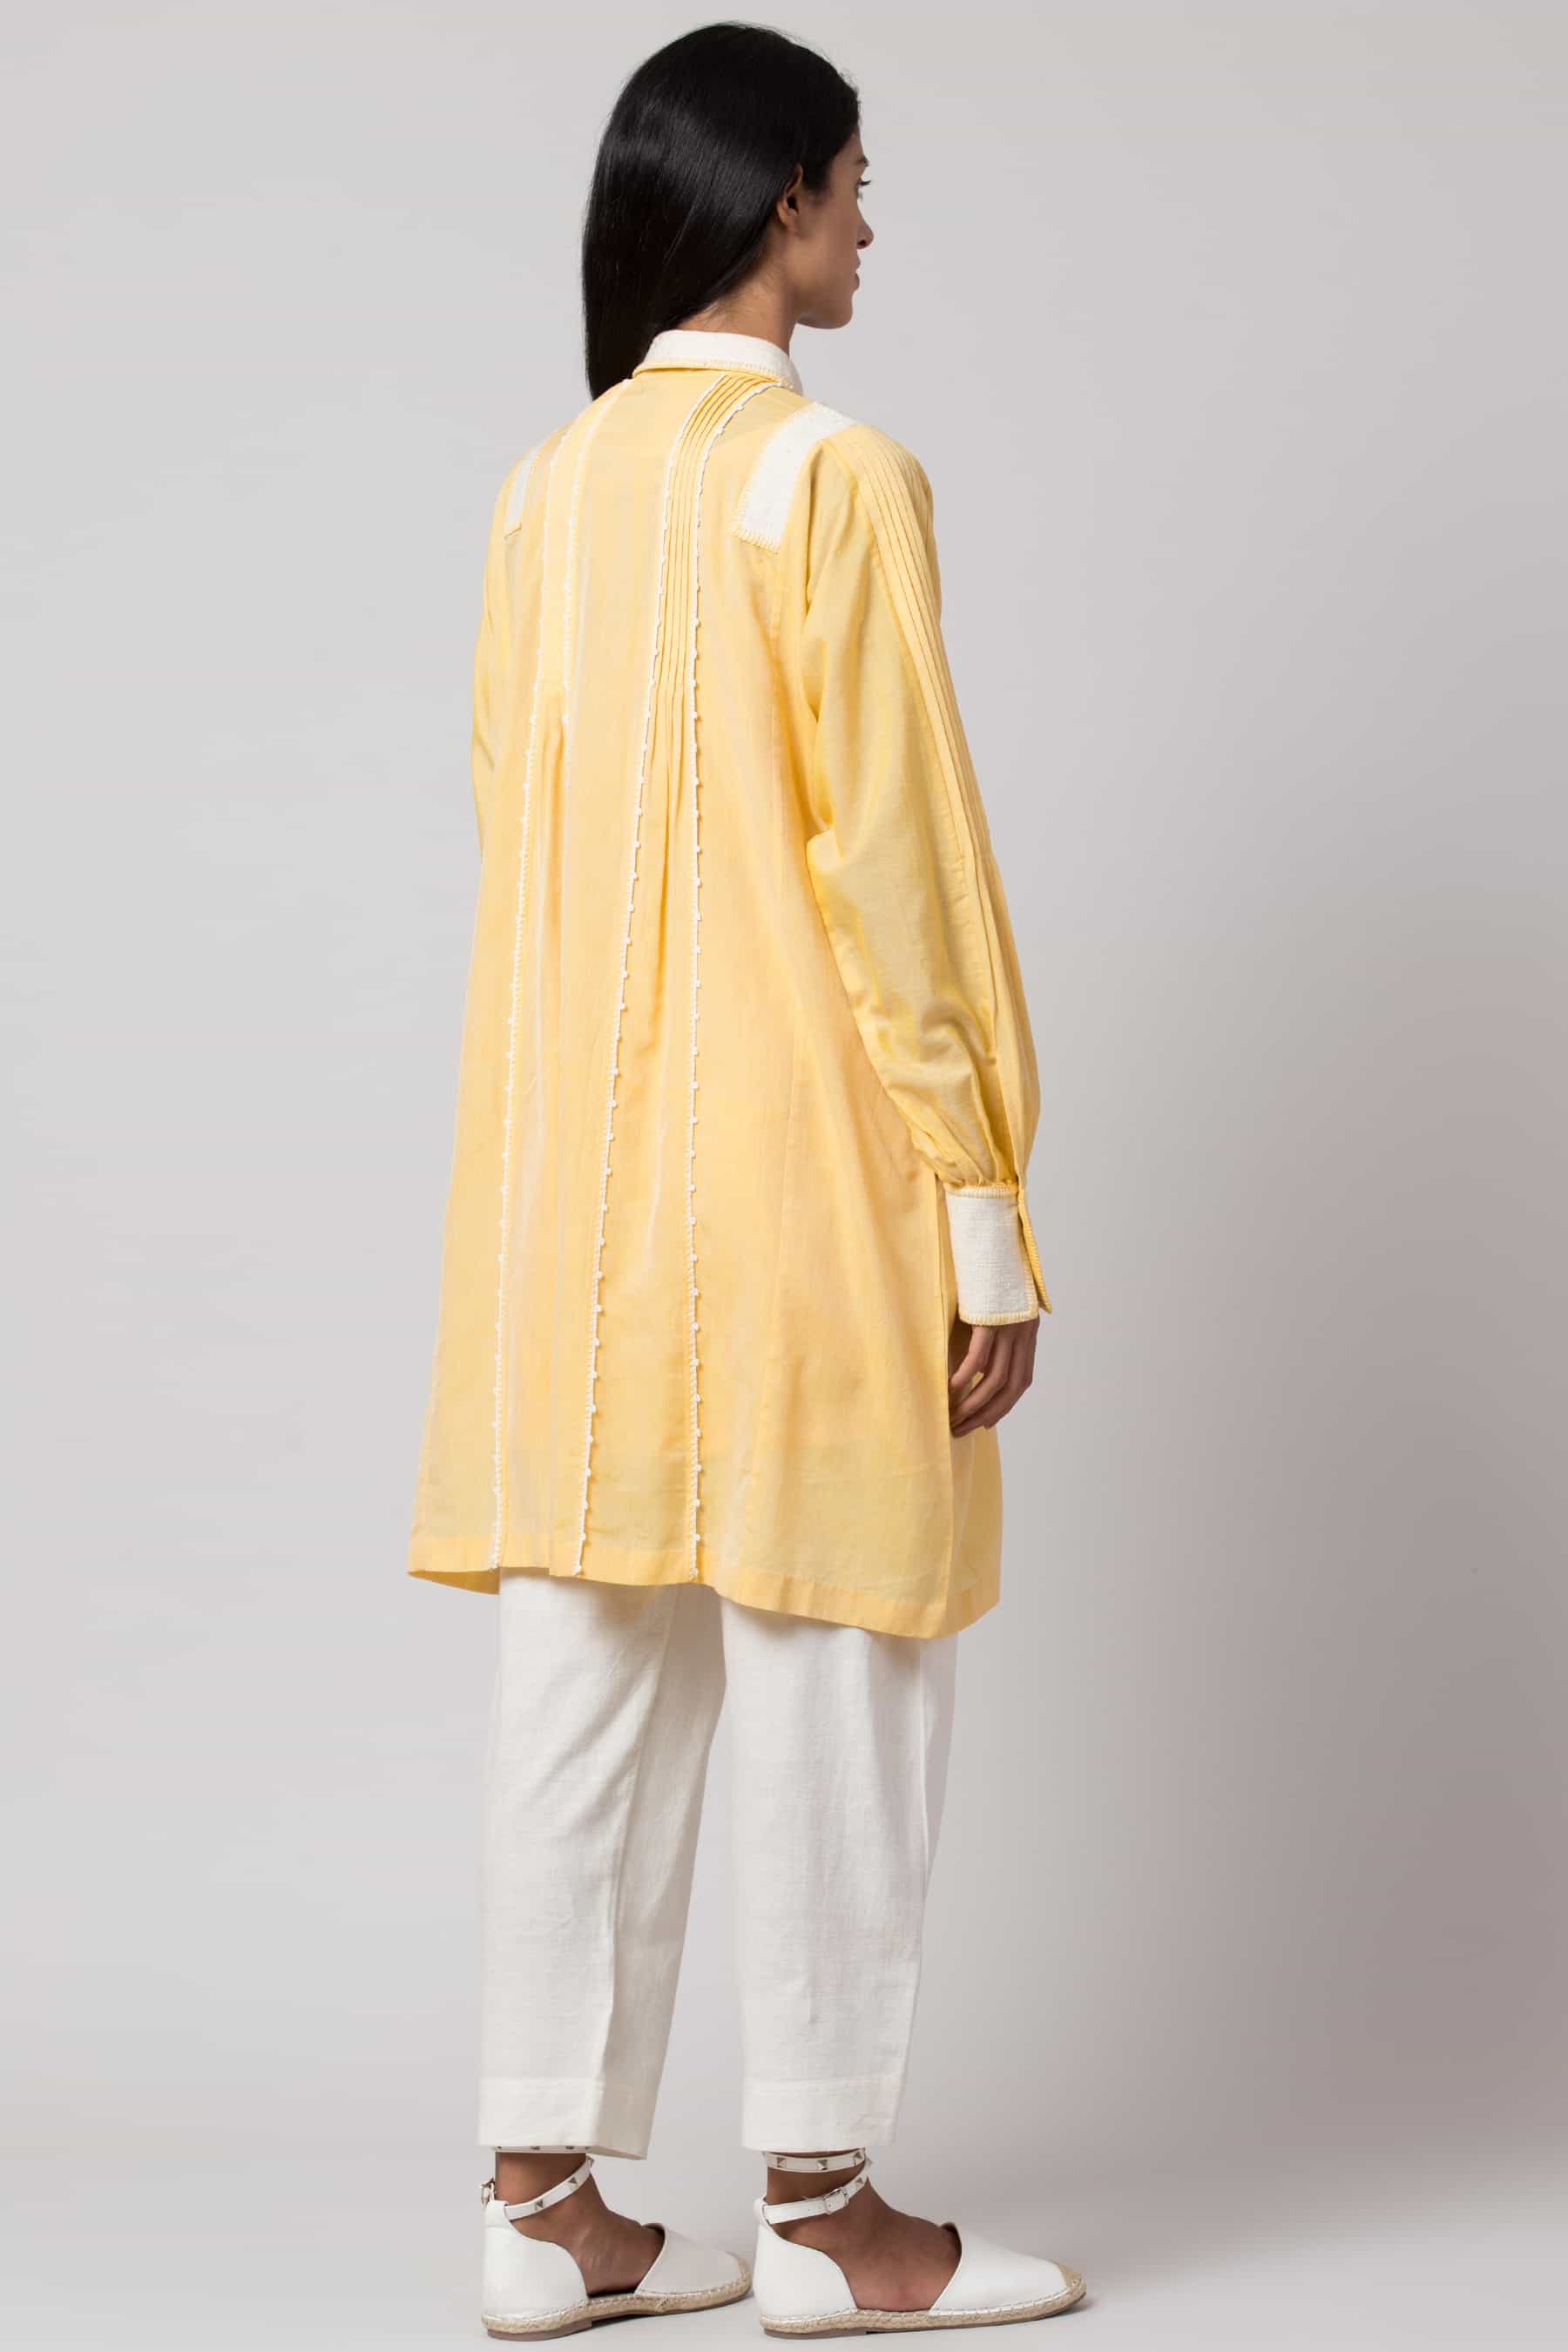 Yellow paneled crochet shirt dress made in 100% handwoven yarn dyed cotton Chanderi - Back